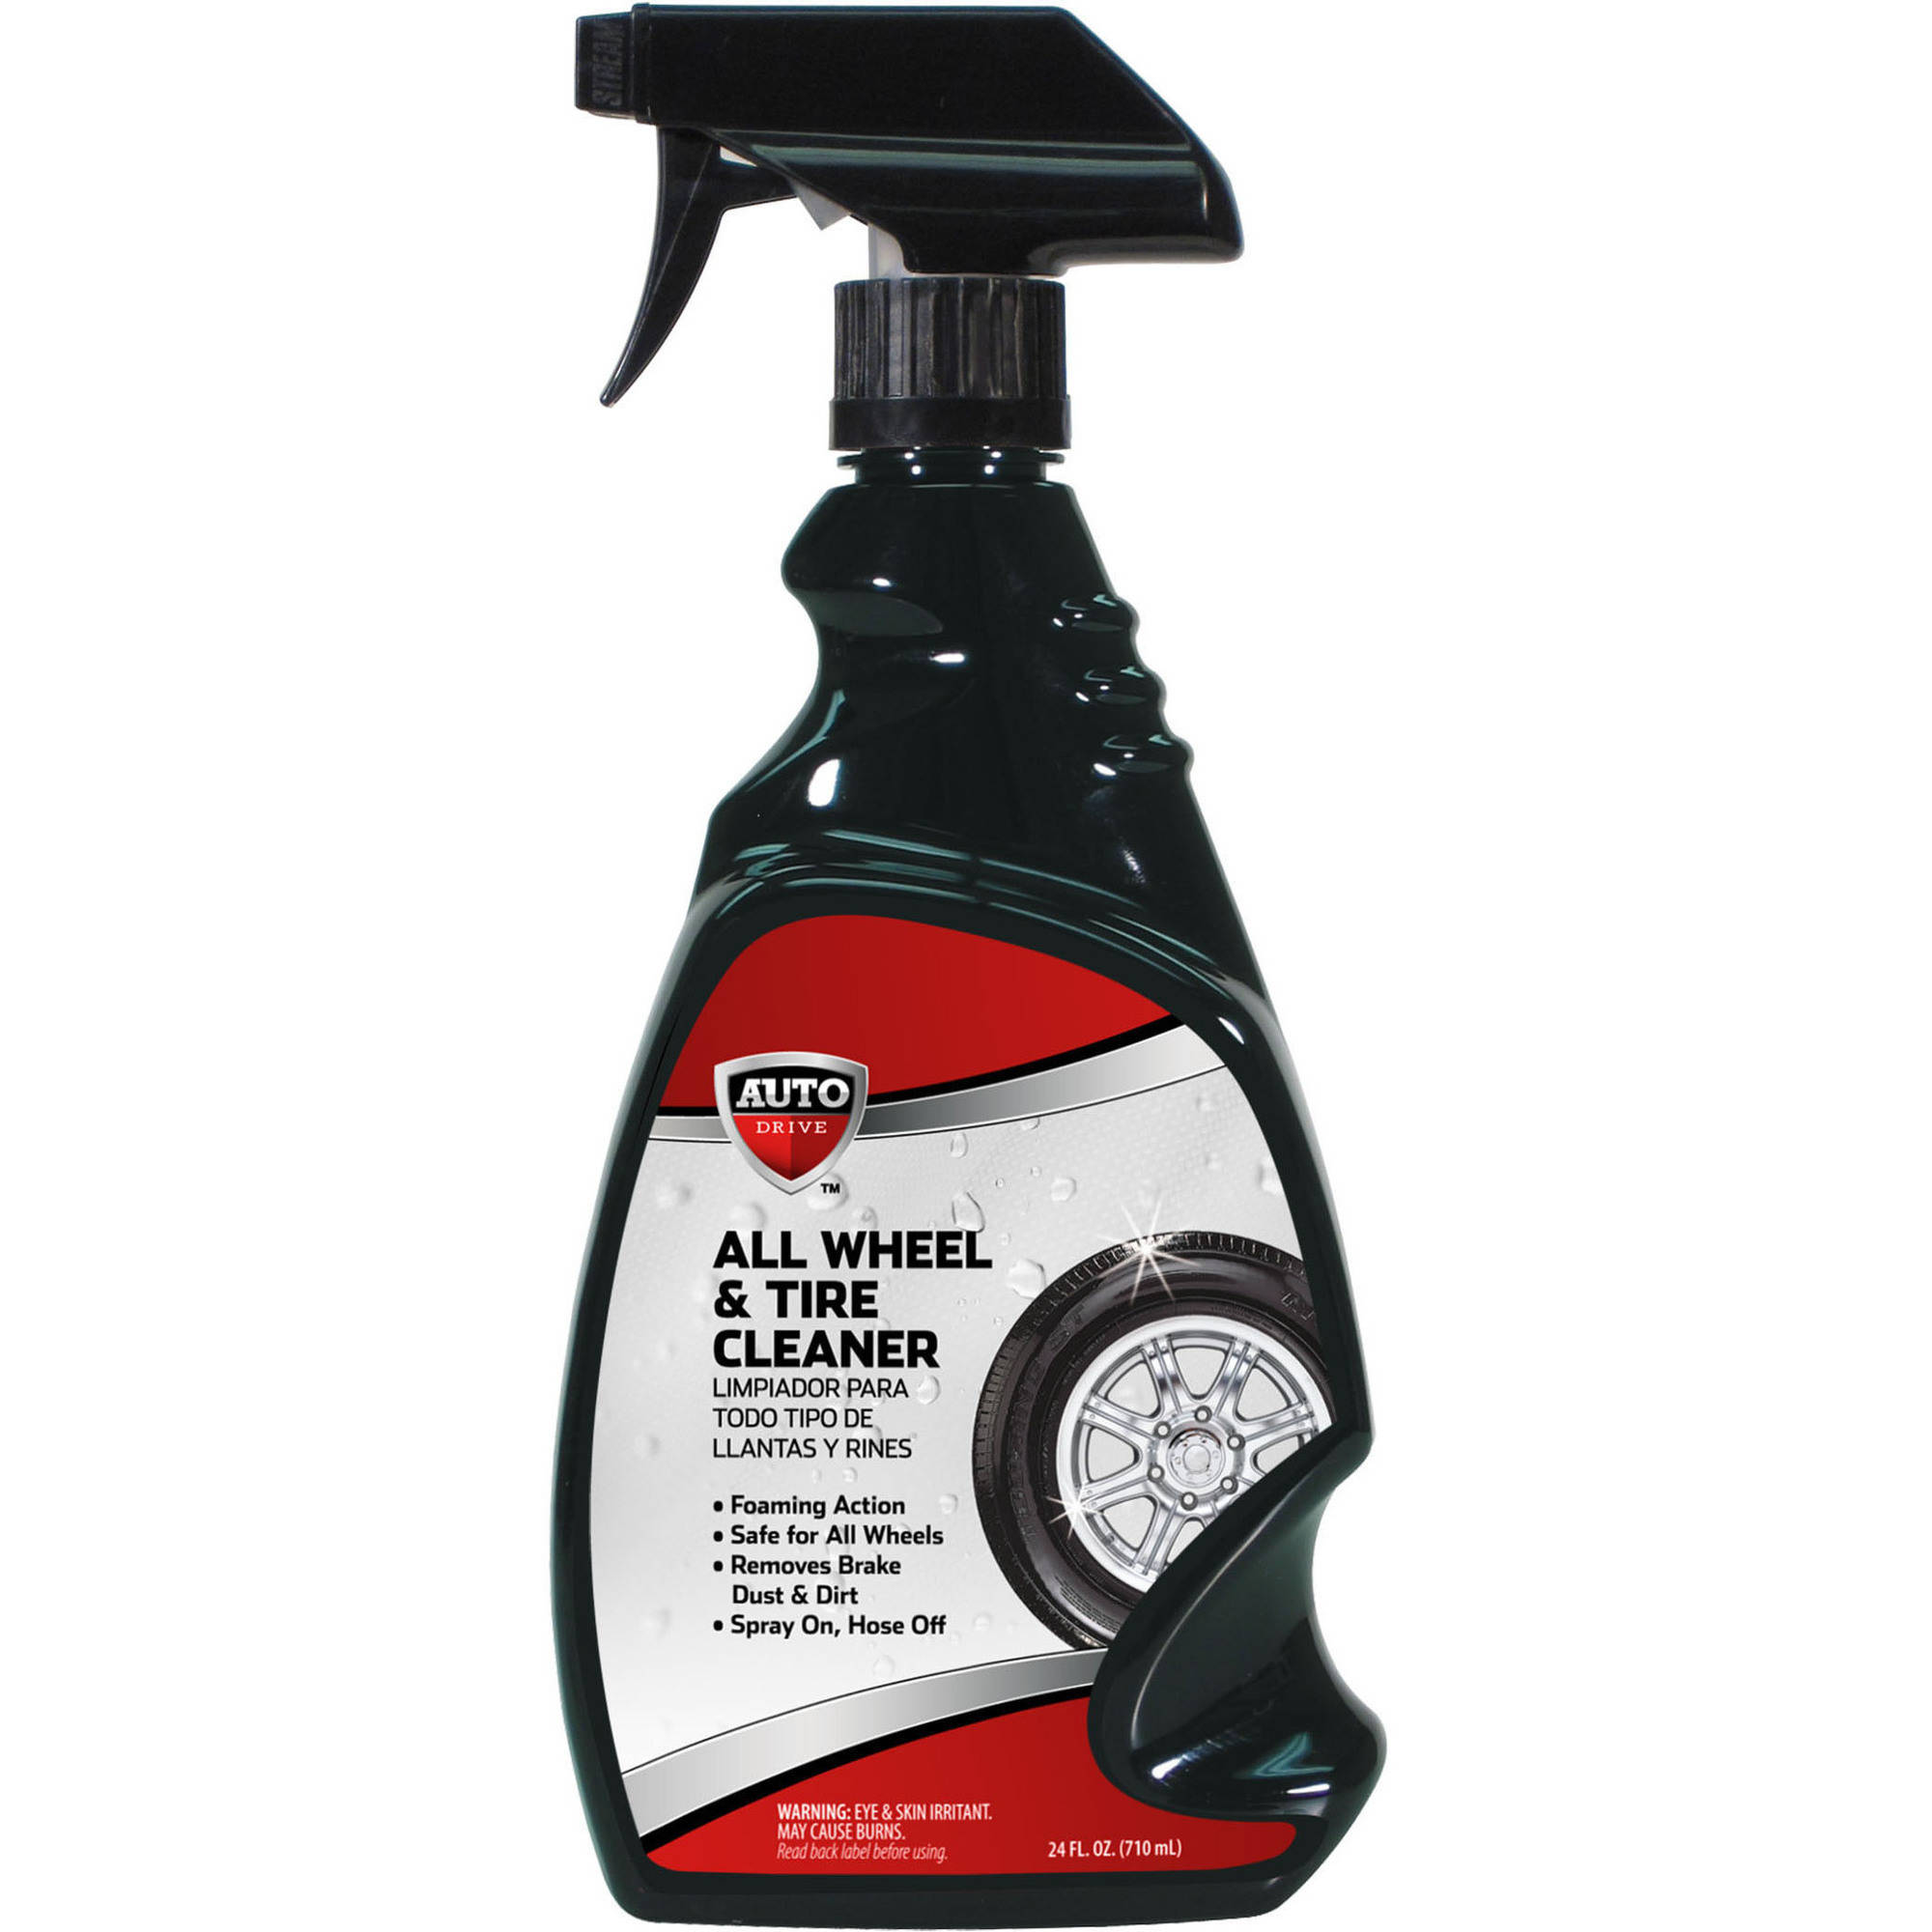 Auto Drive Wheel and Tire Cleaner, 24 oz